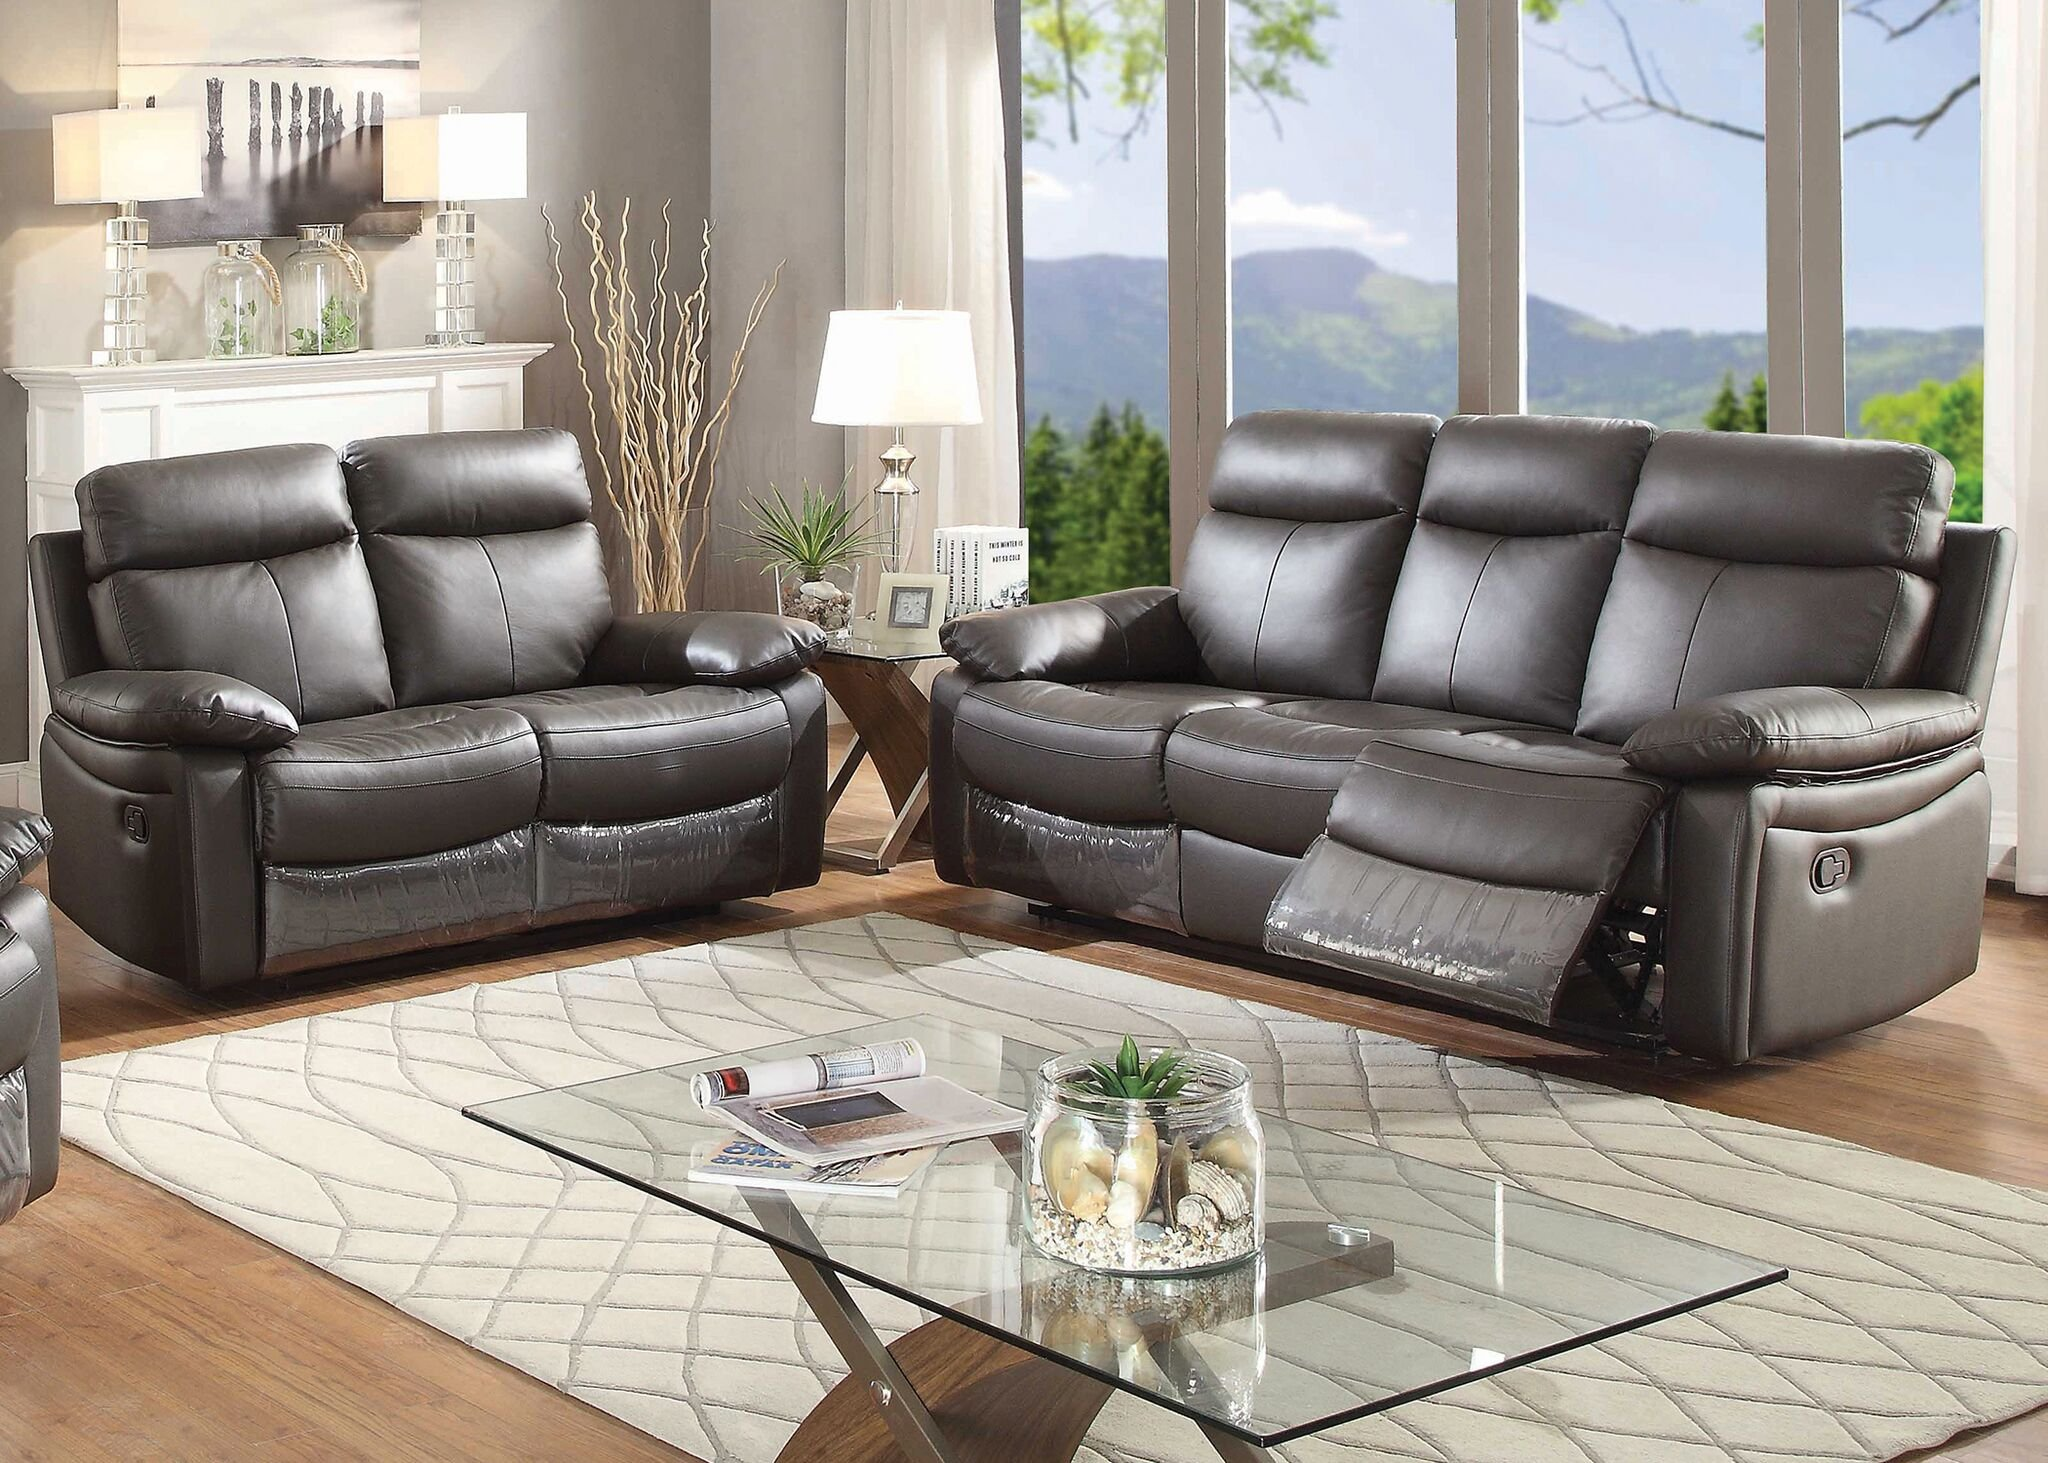 AC Pacific Ryker Collection Contemporary 2-Piece Upholstered Leather Living Room Set with Reclining Sofa and Loveseat, Dark Brown by AC Pacific